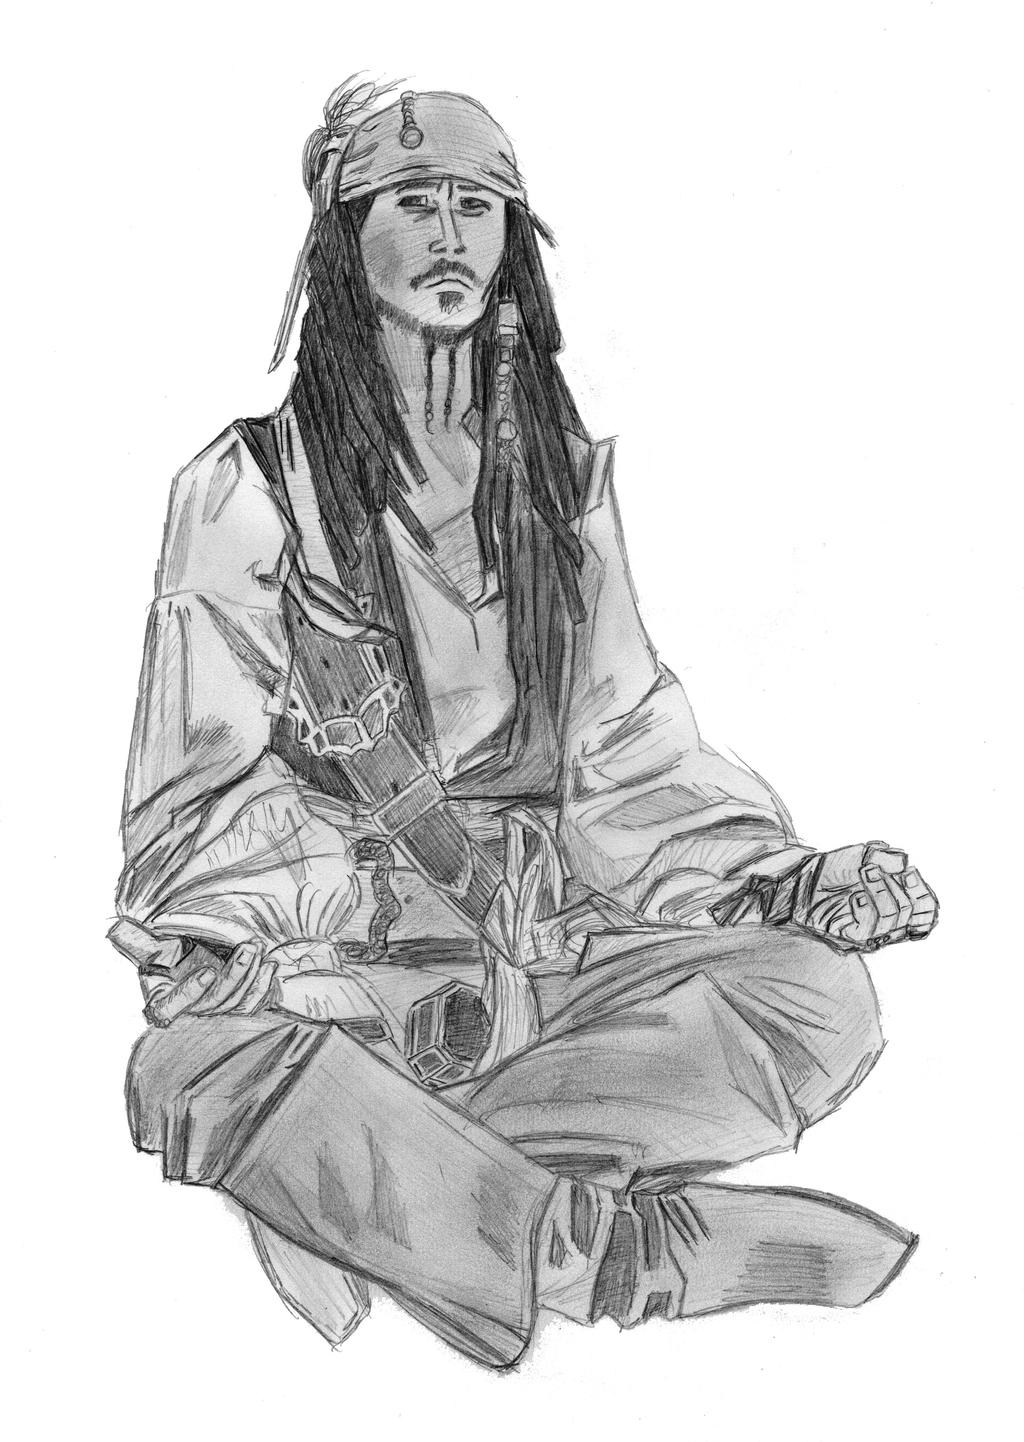 Jack Sparrow 2006 by elodie50a